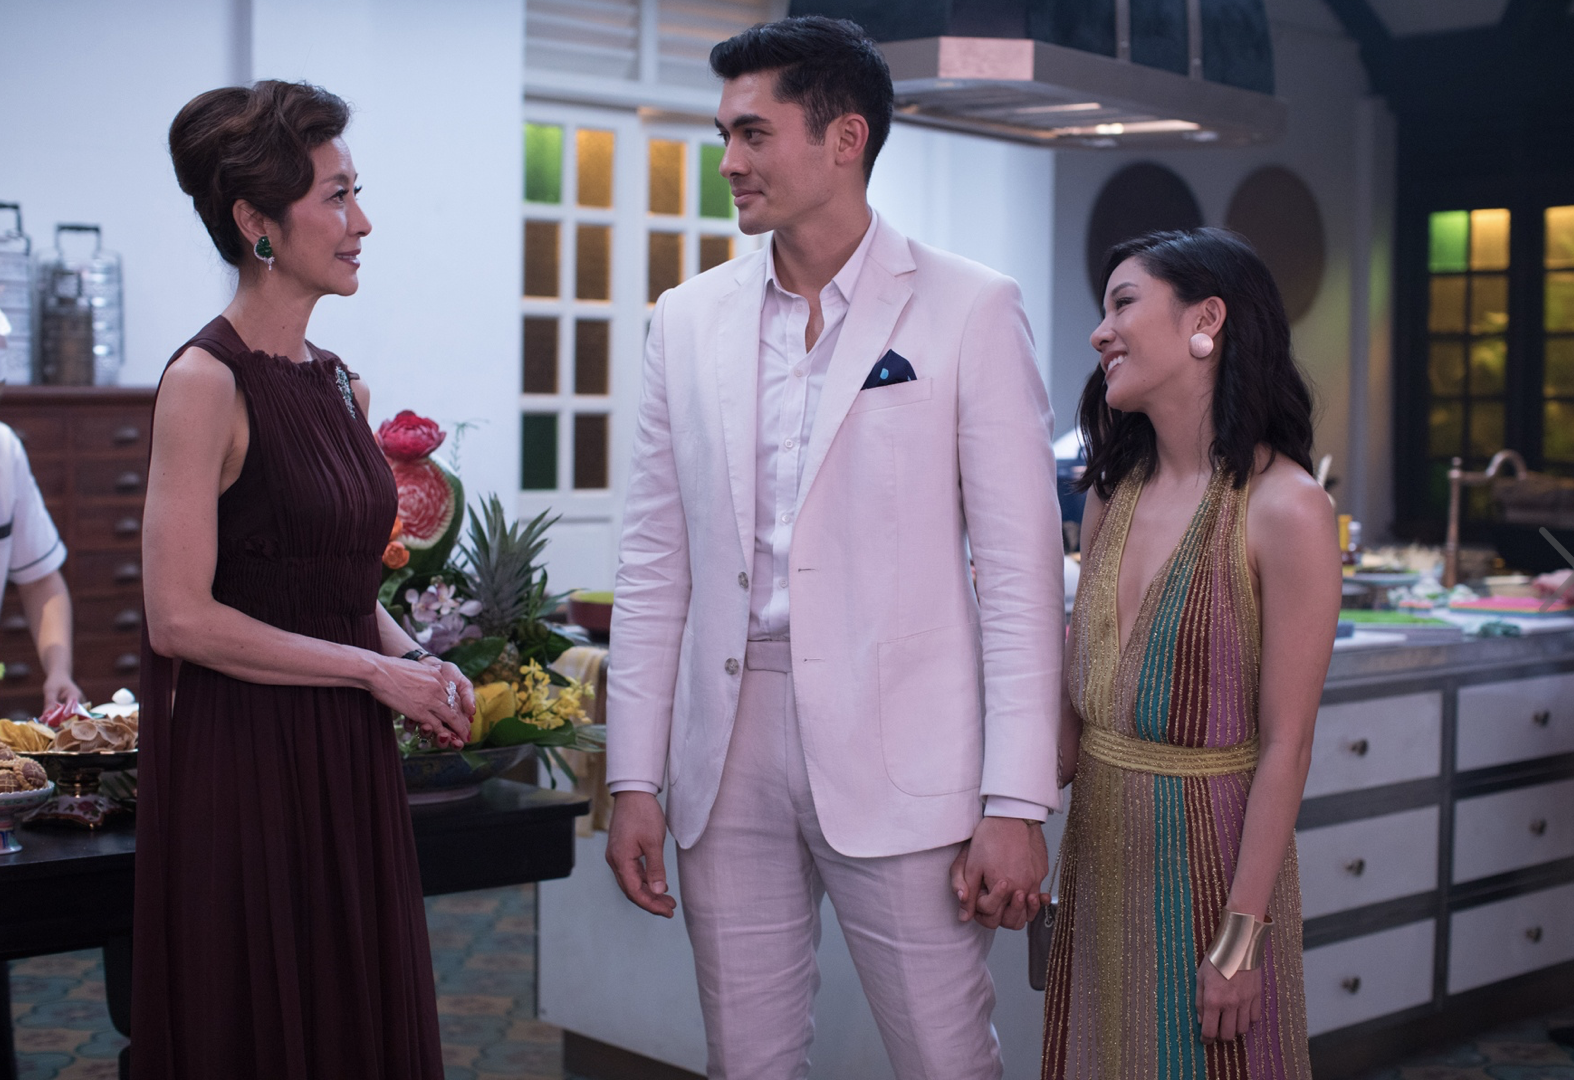 Culture and Charm Collide in 'Crazy Rich Asians'